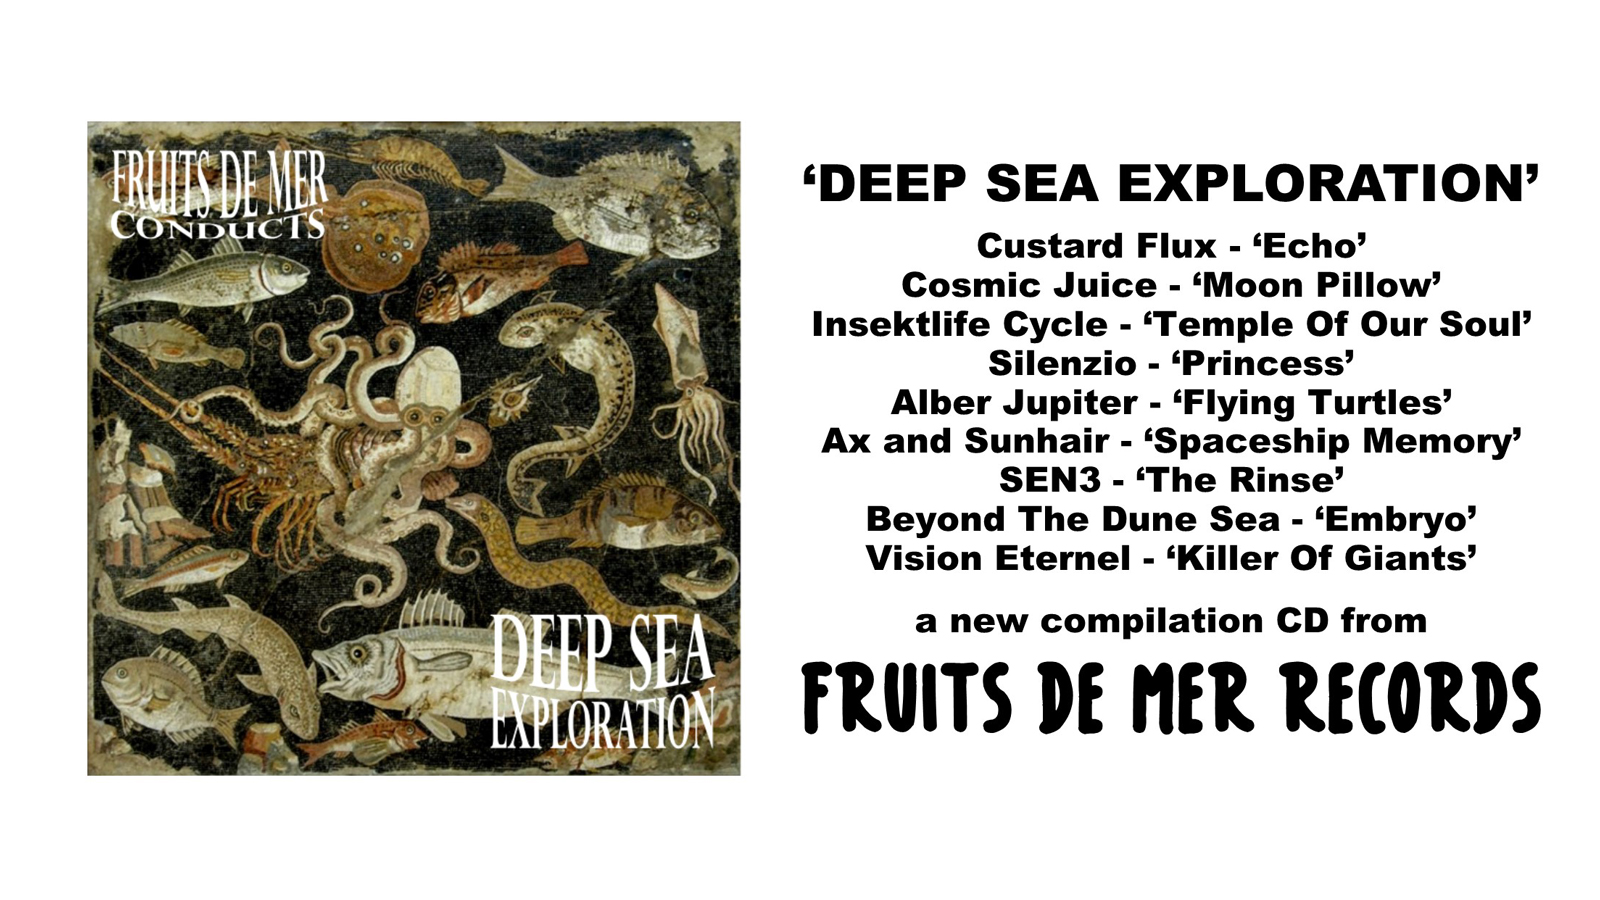 Fruits De Mer Conducts: Deep Sea Exploration Compilation Is Released